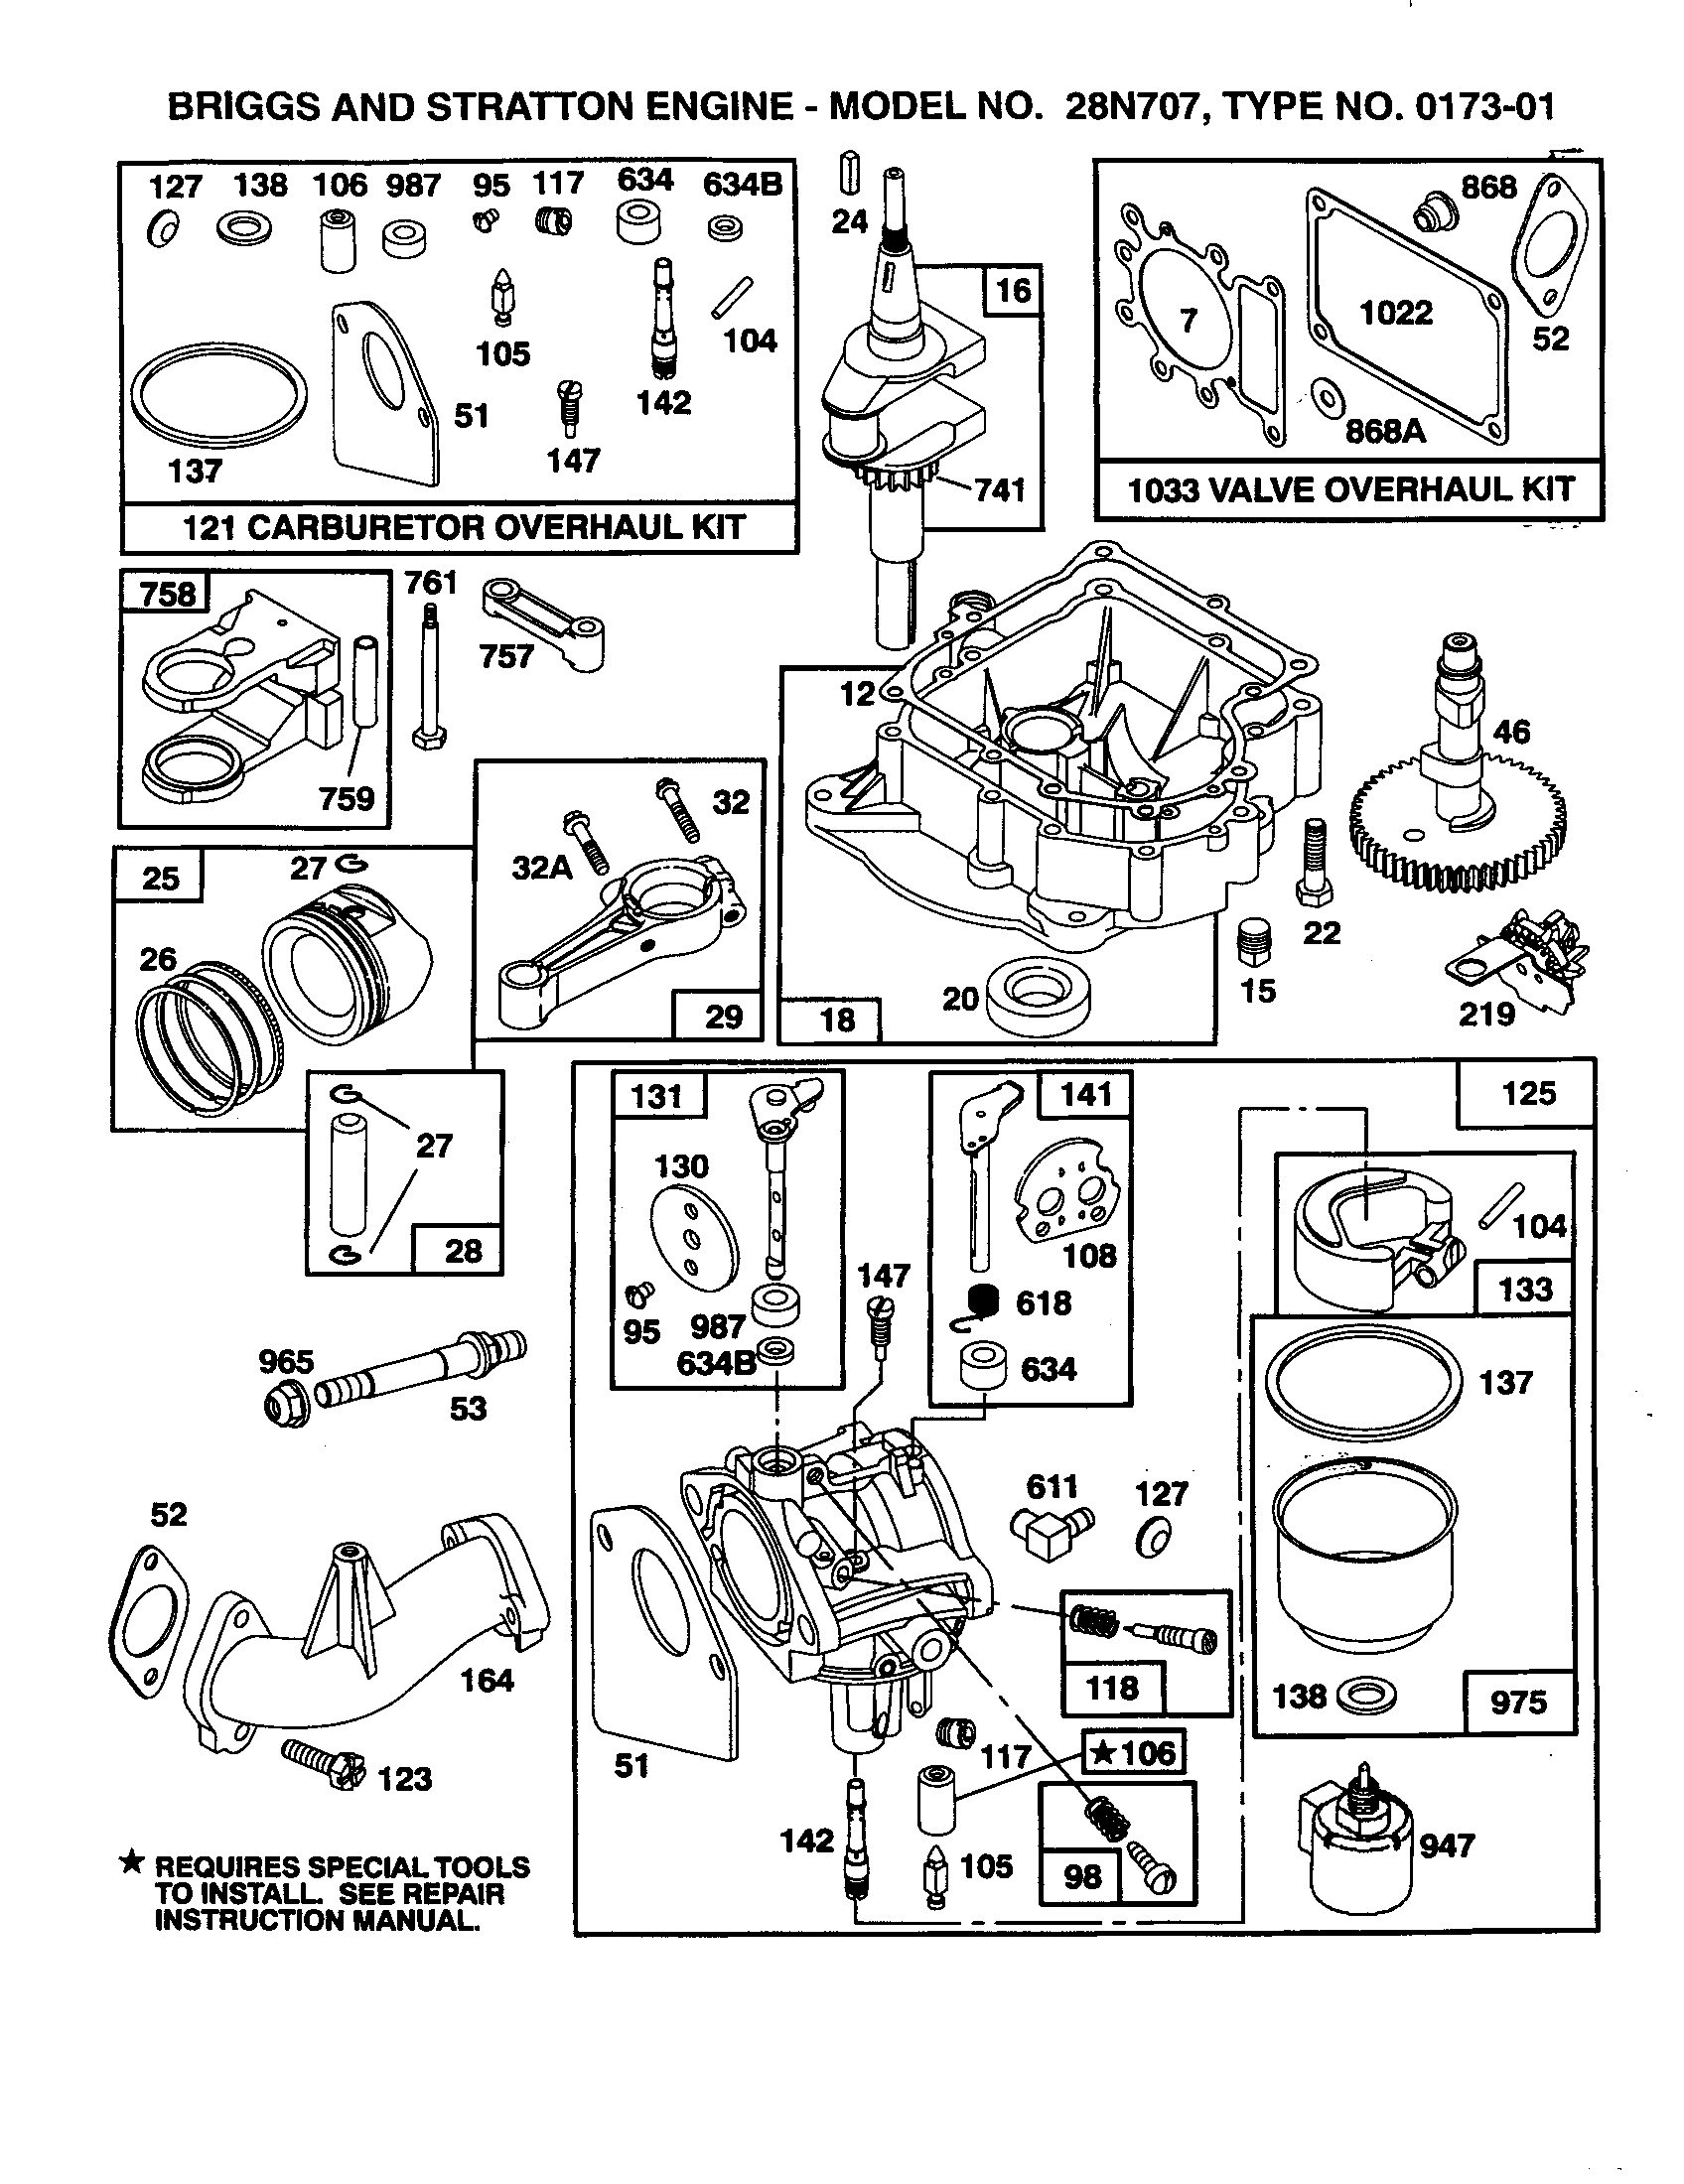 Briggs-Stratton model 28N707-0173-01 engine genuine parts